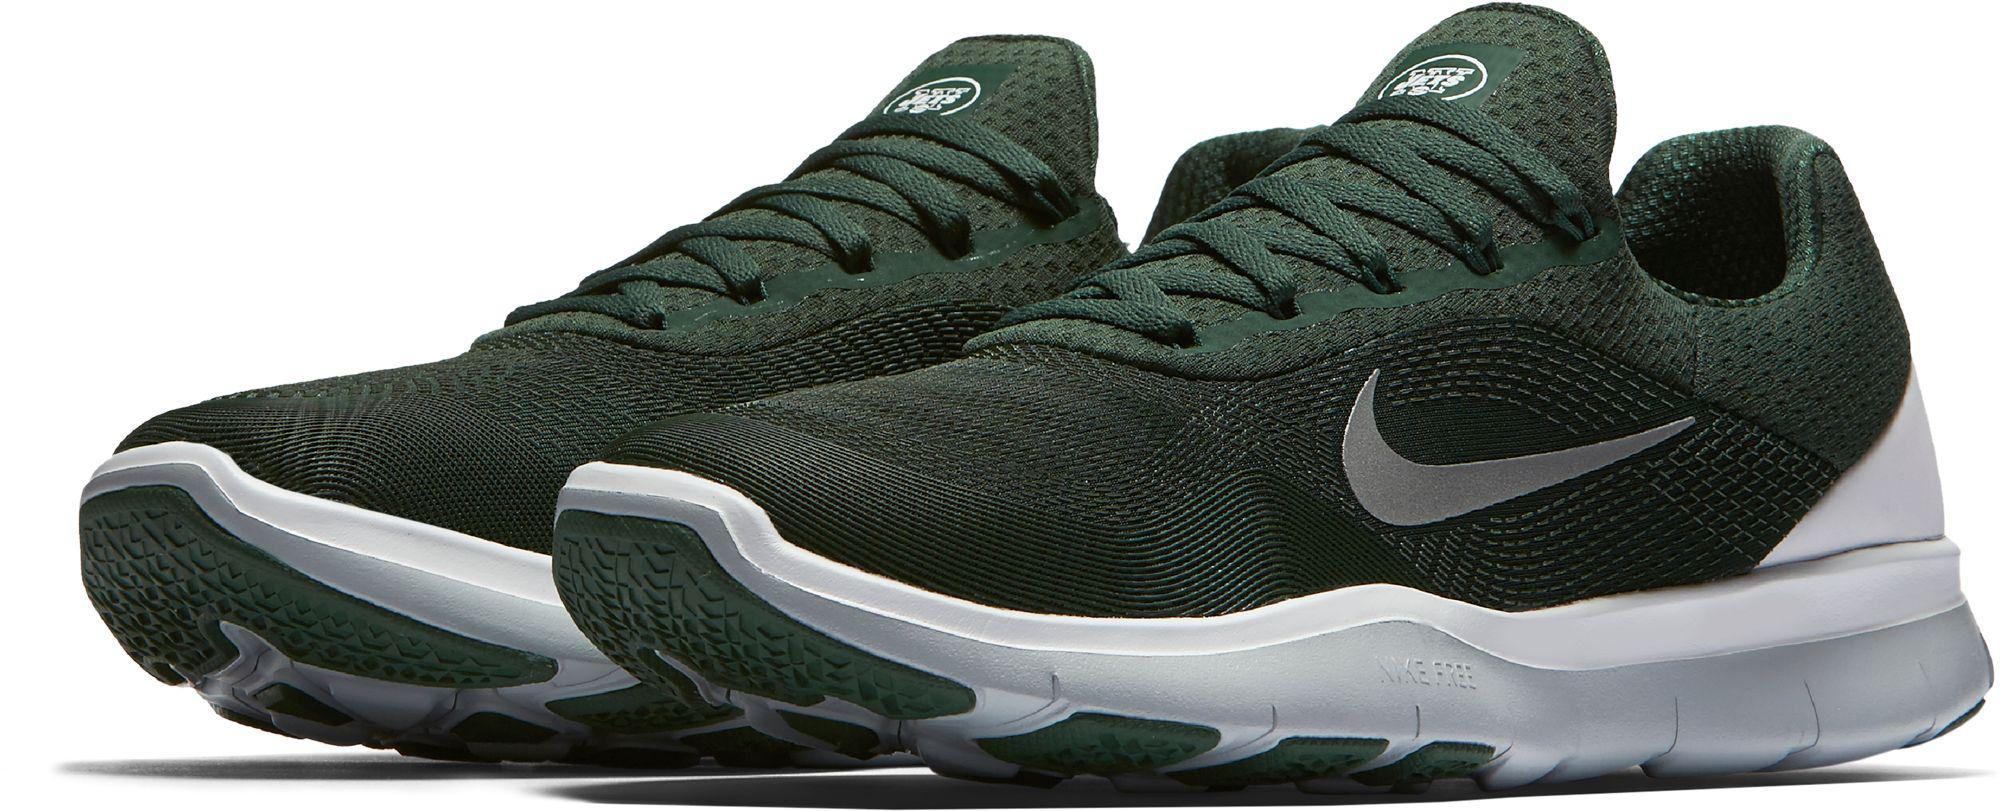 info for 6f6e4 fffdb Nike - Green Free Trainer V7 Nfl Jets Training Shoes for Men - Lyst